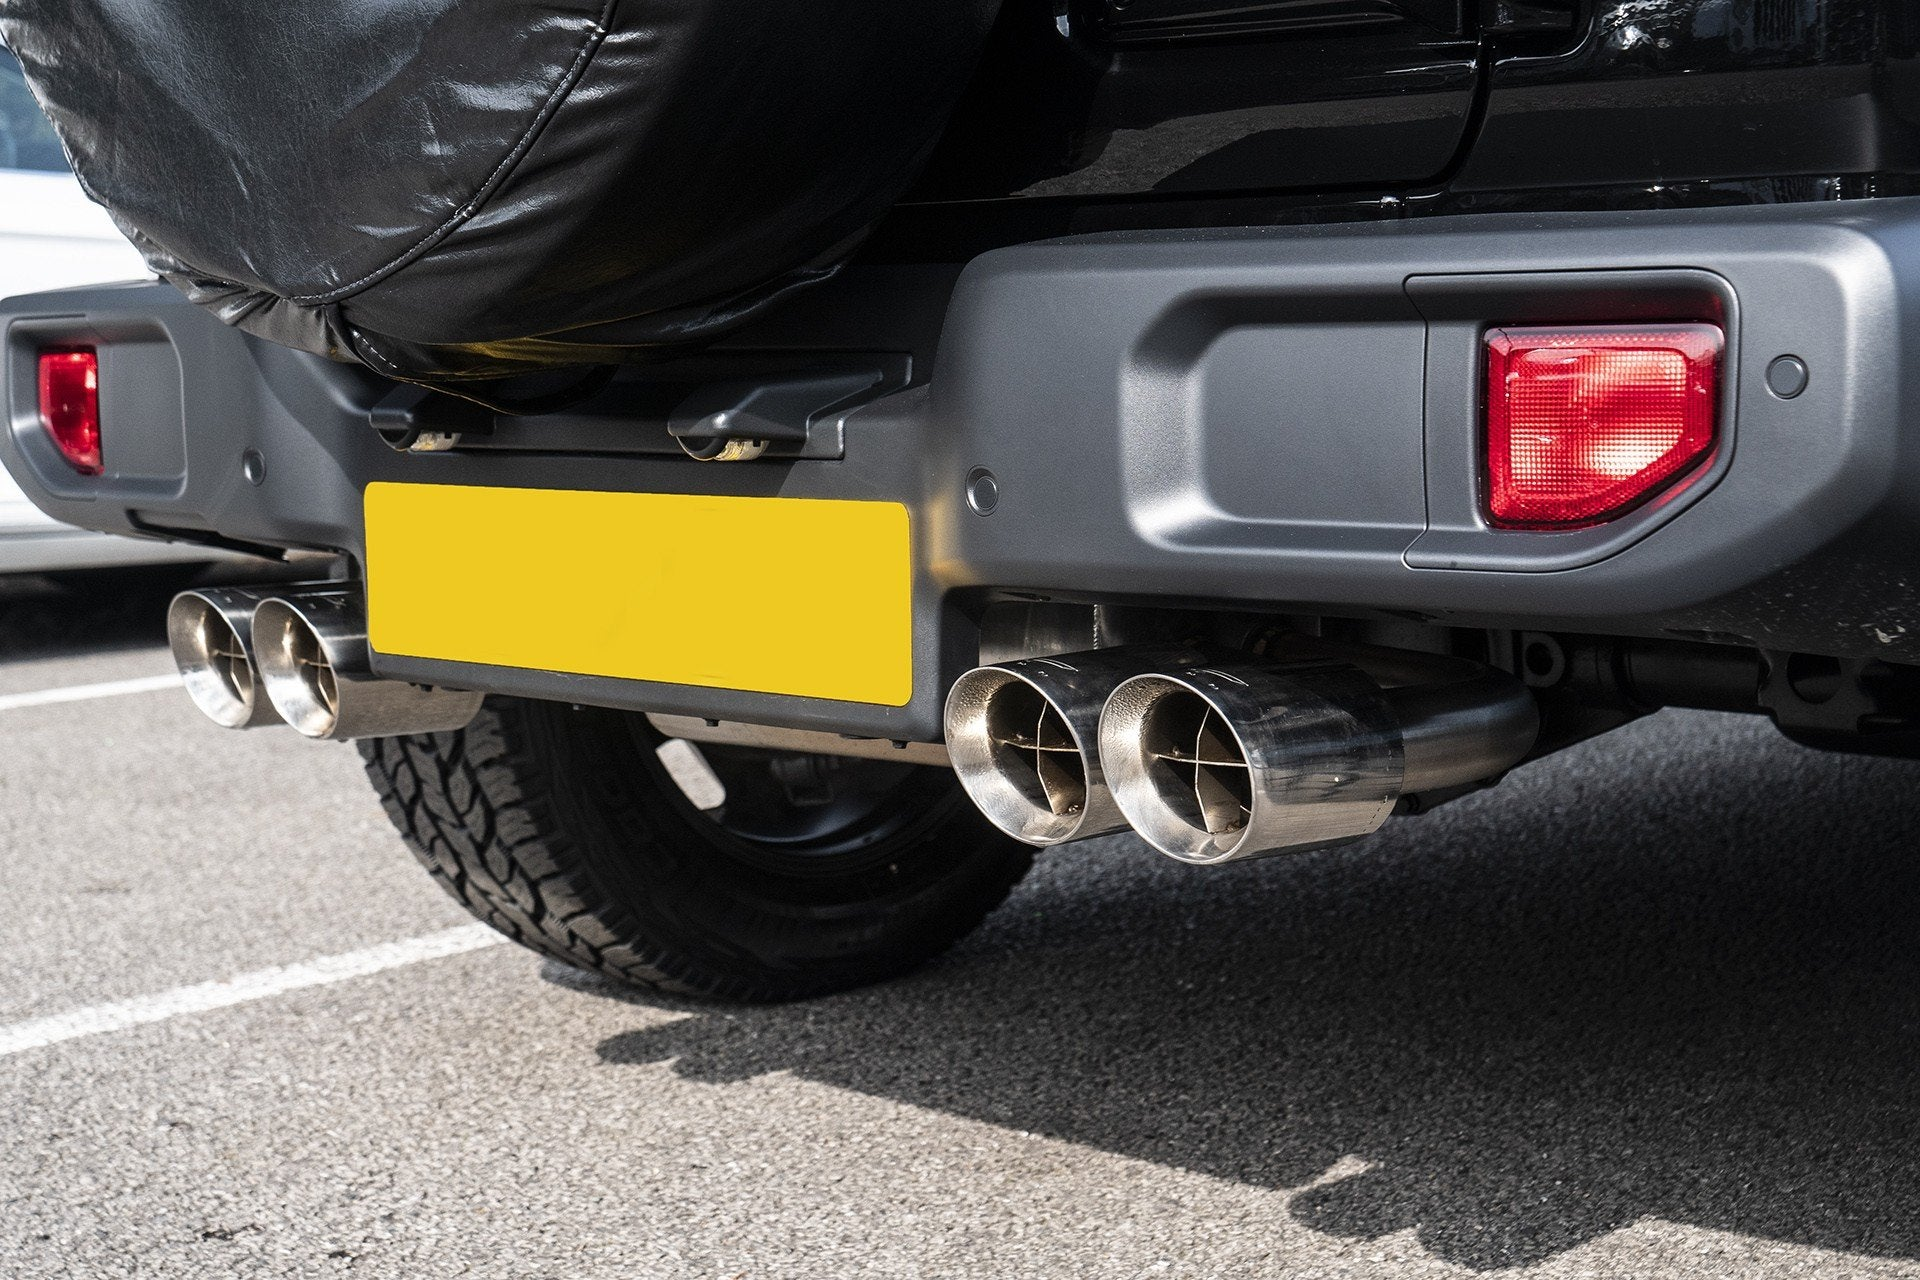 Jeep Wrangler Jl (2018-Present) 4 Door Quad Crosshair Exhaust System by Chelsea Truck Company - Image 2713